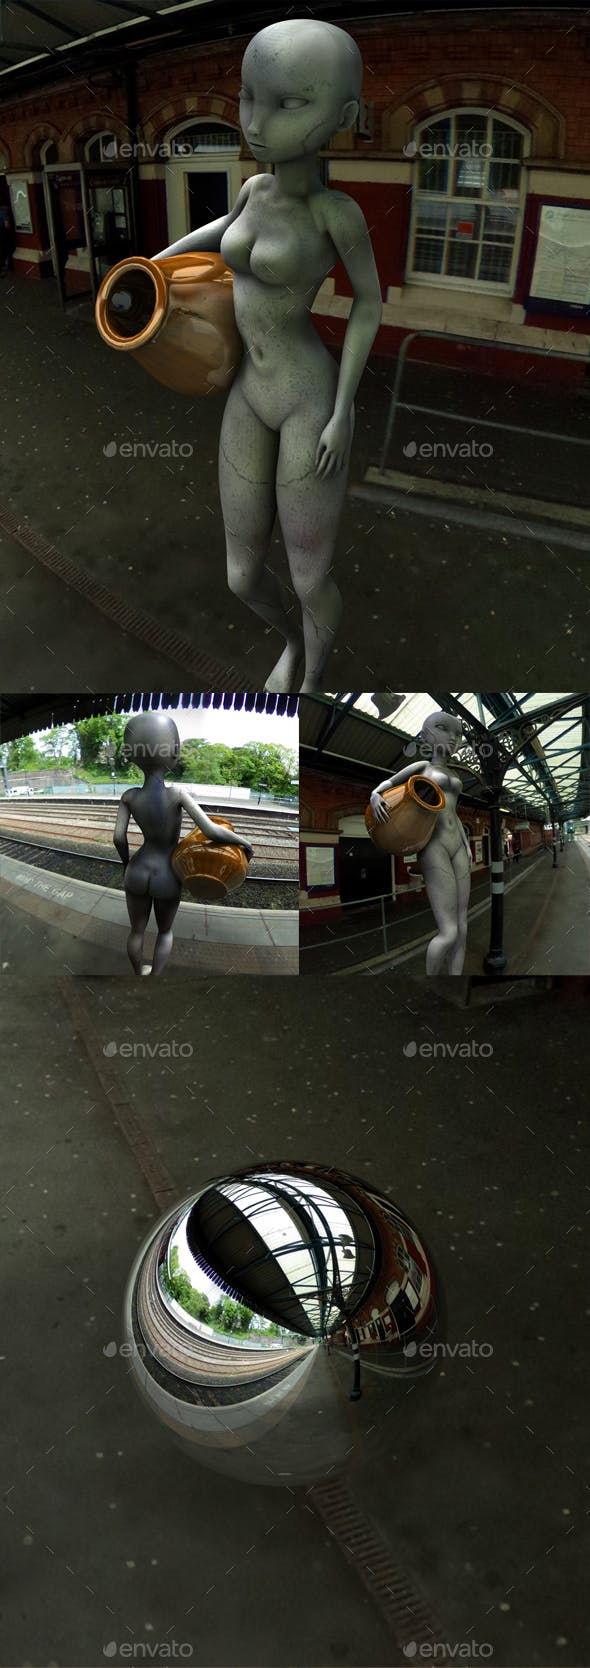 Outdoor Train Station HDRI - 3DOcean Item for Sale